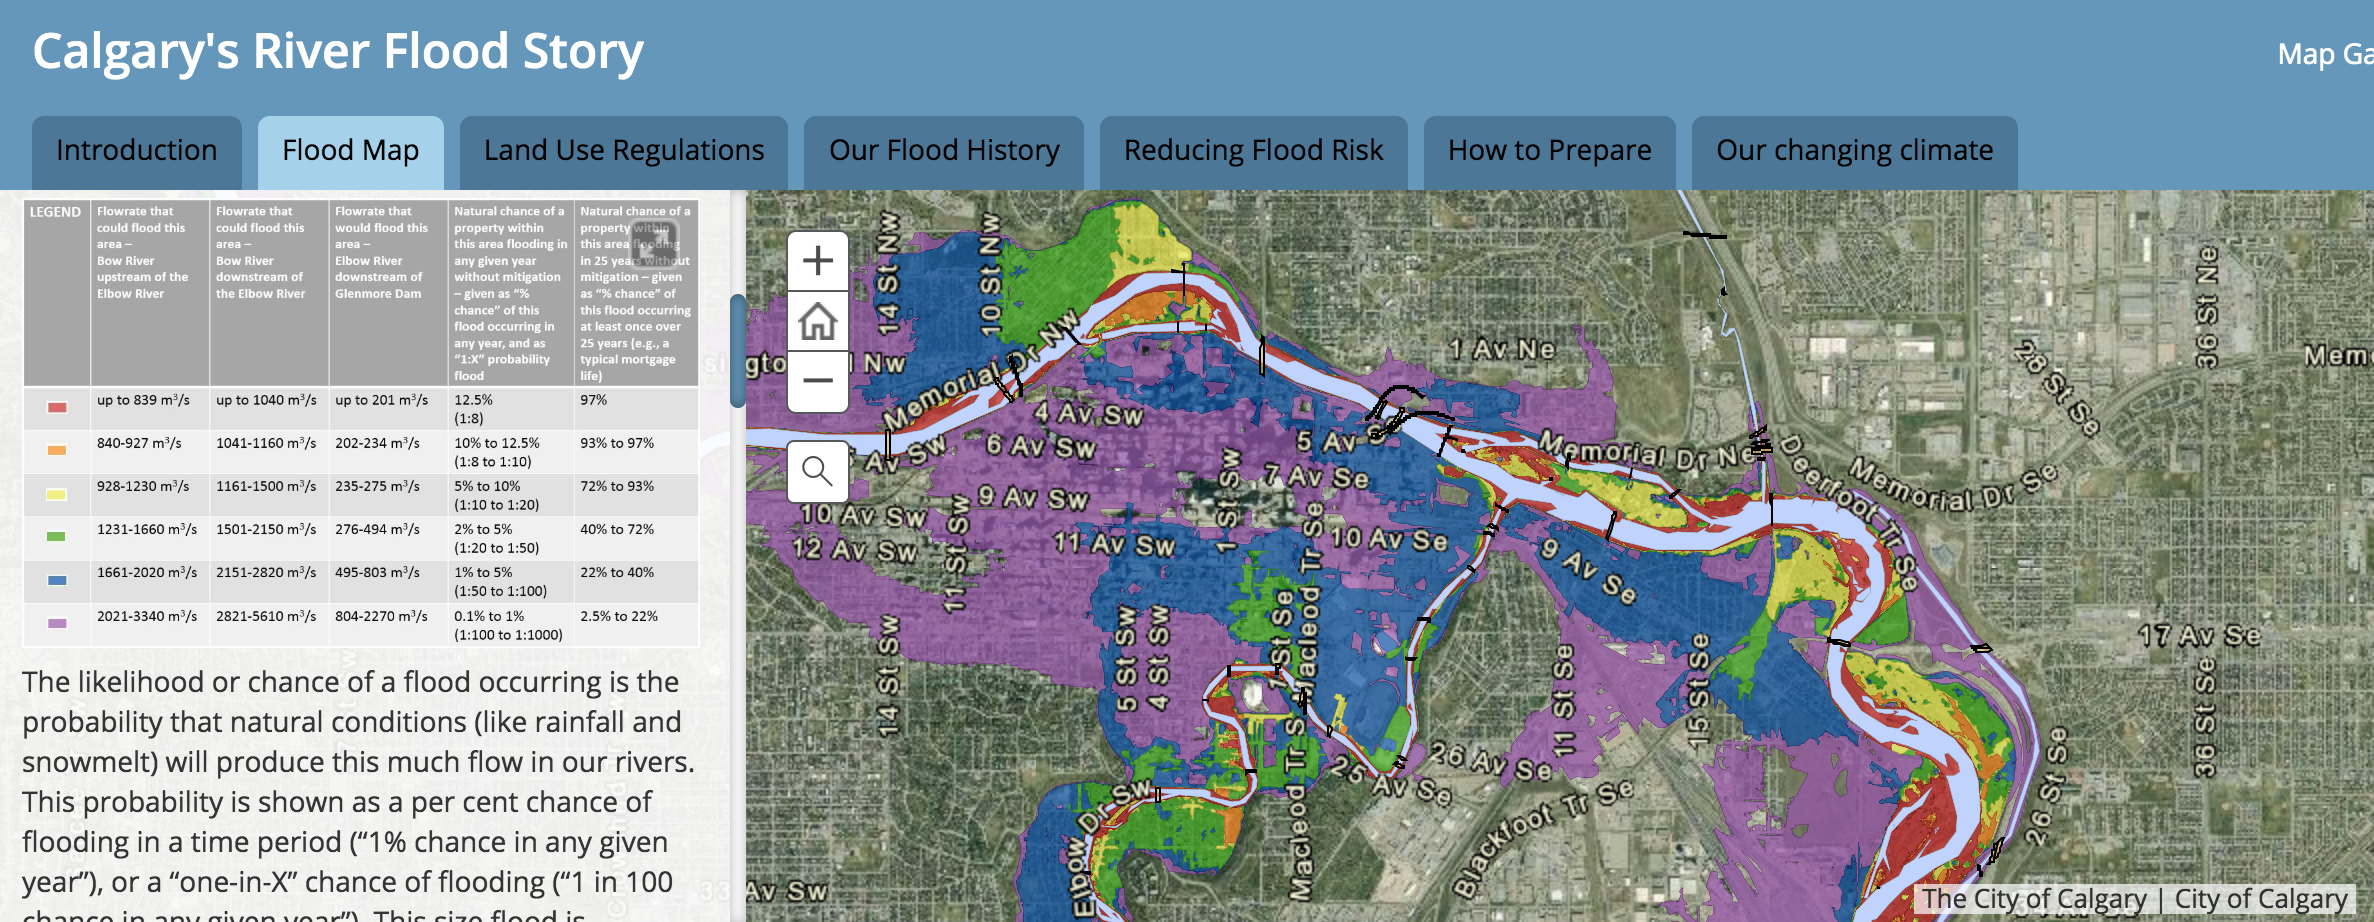 City Of Calgary Interactive Map Interactive maps and flood themed tours introduced for City's 2019